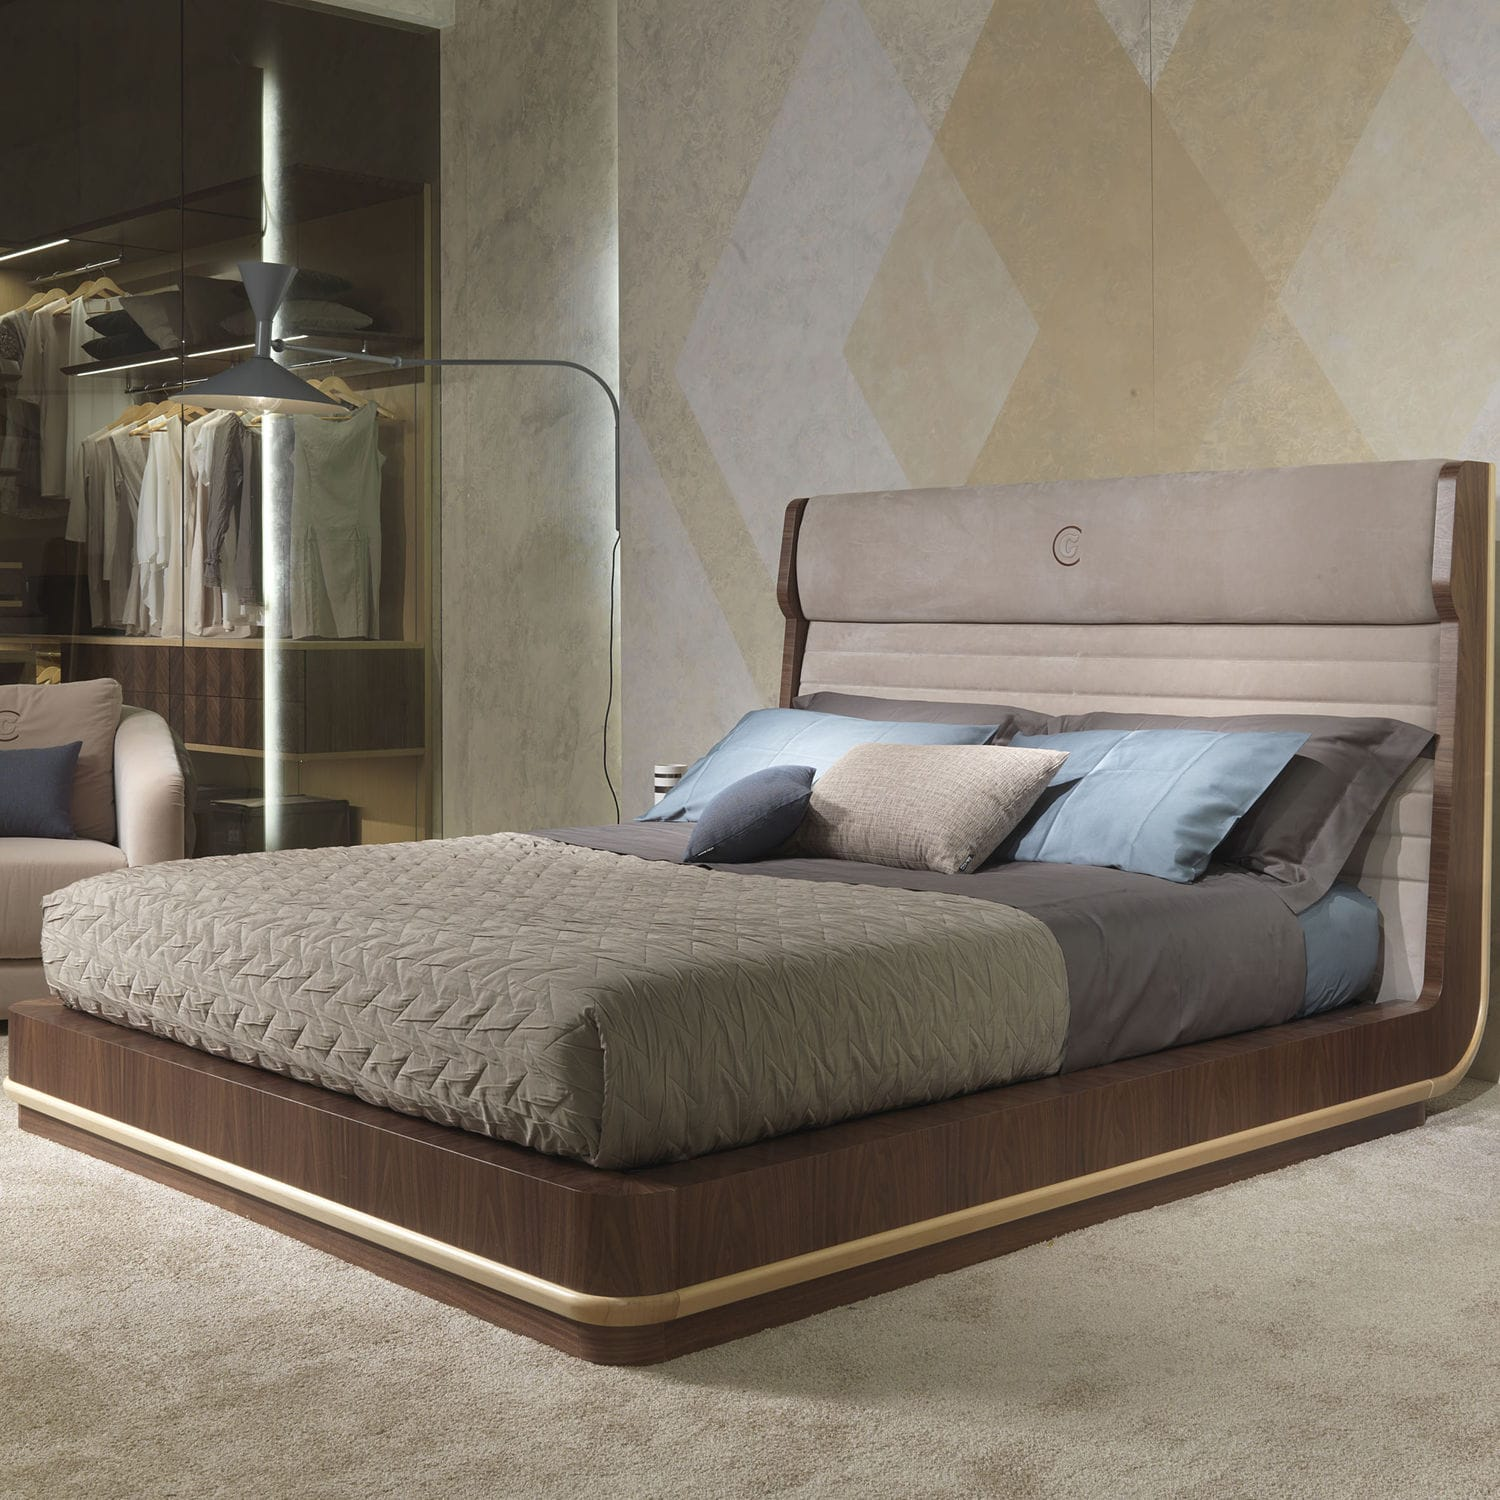 Double Bed Contemporary With Upholstered Headboard Wooden Le26 Galileo